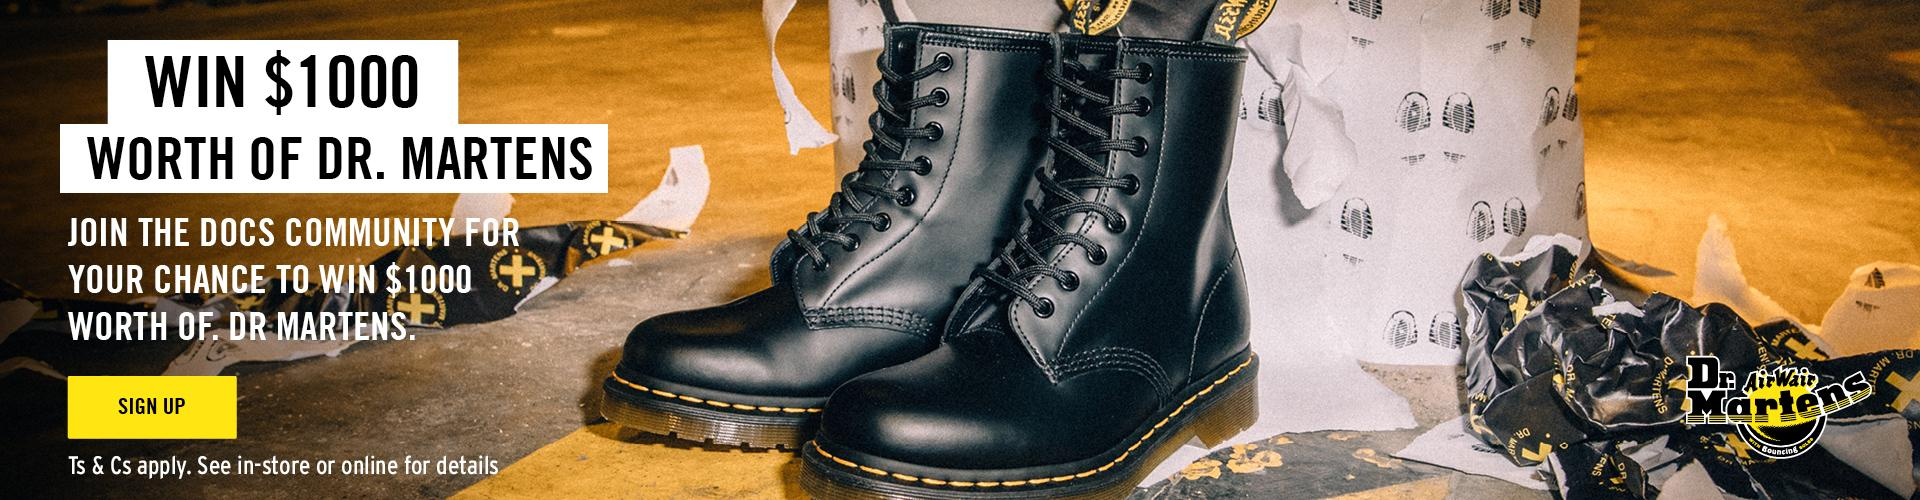 Win $1000 worth of Dr. Martens